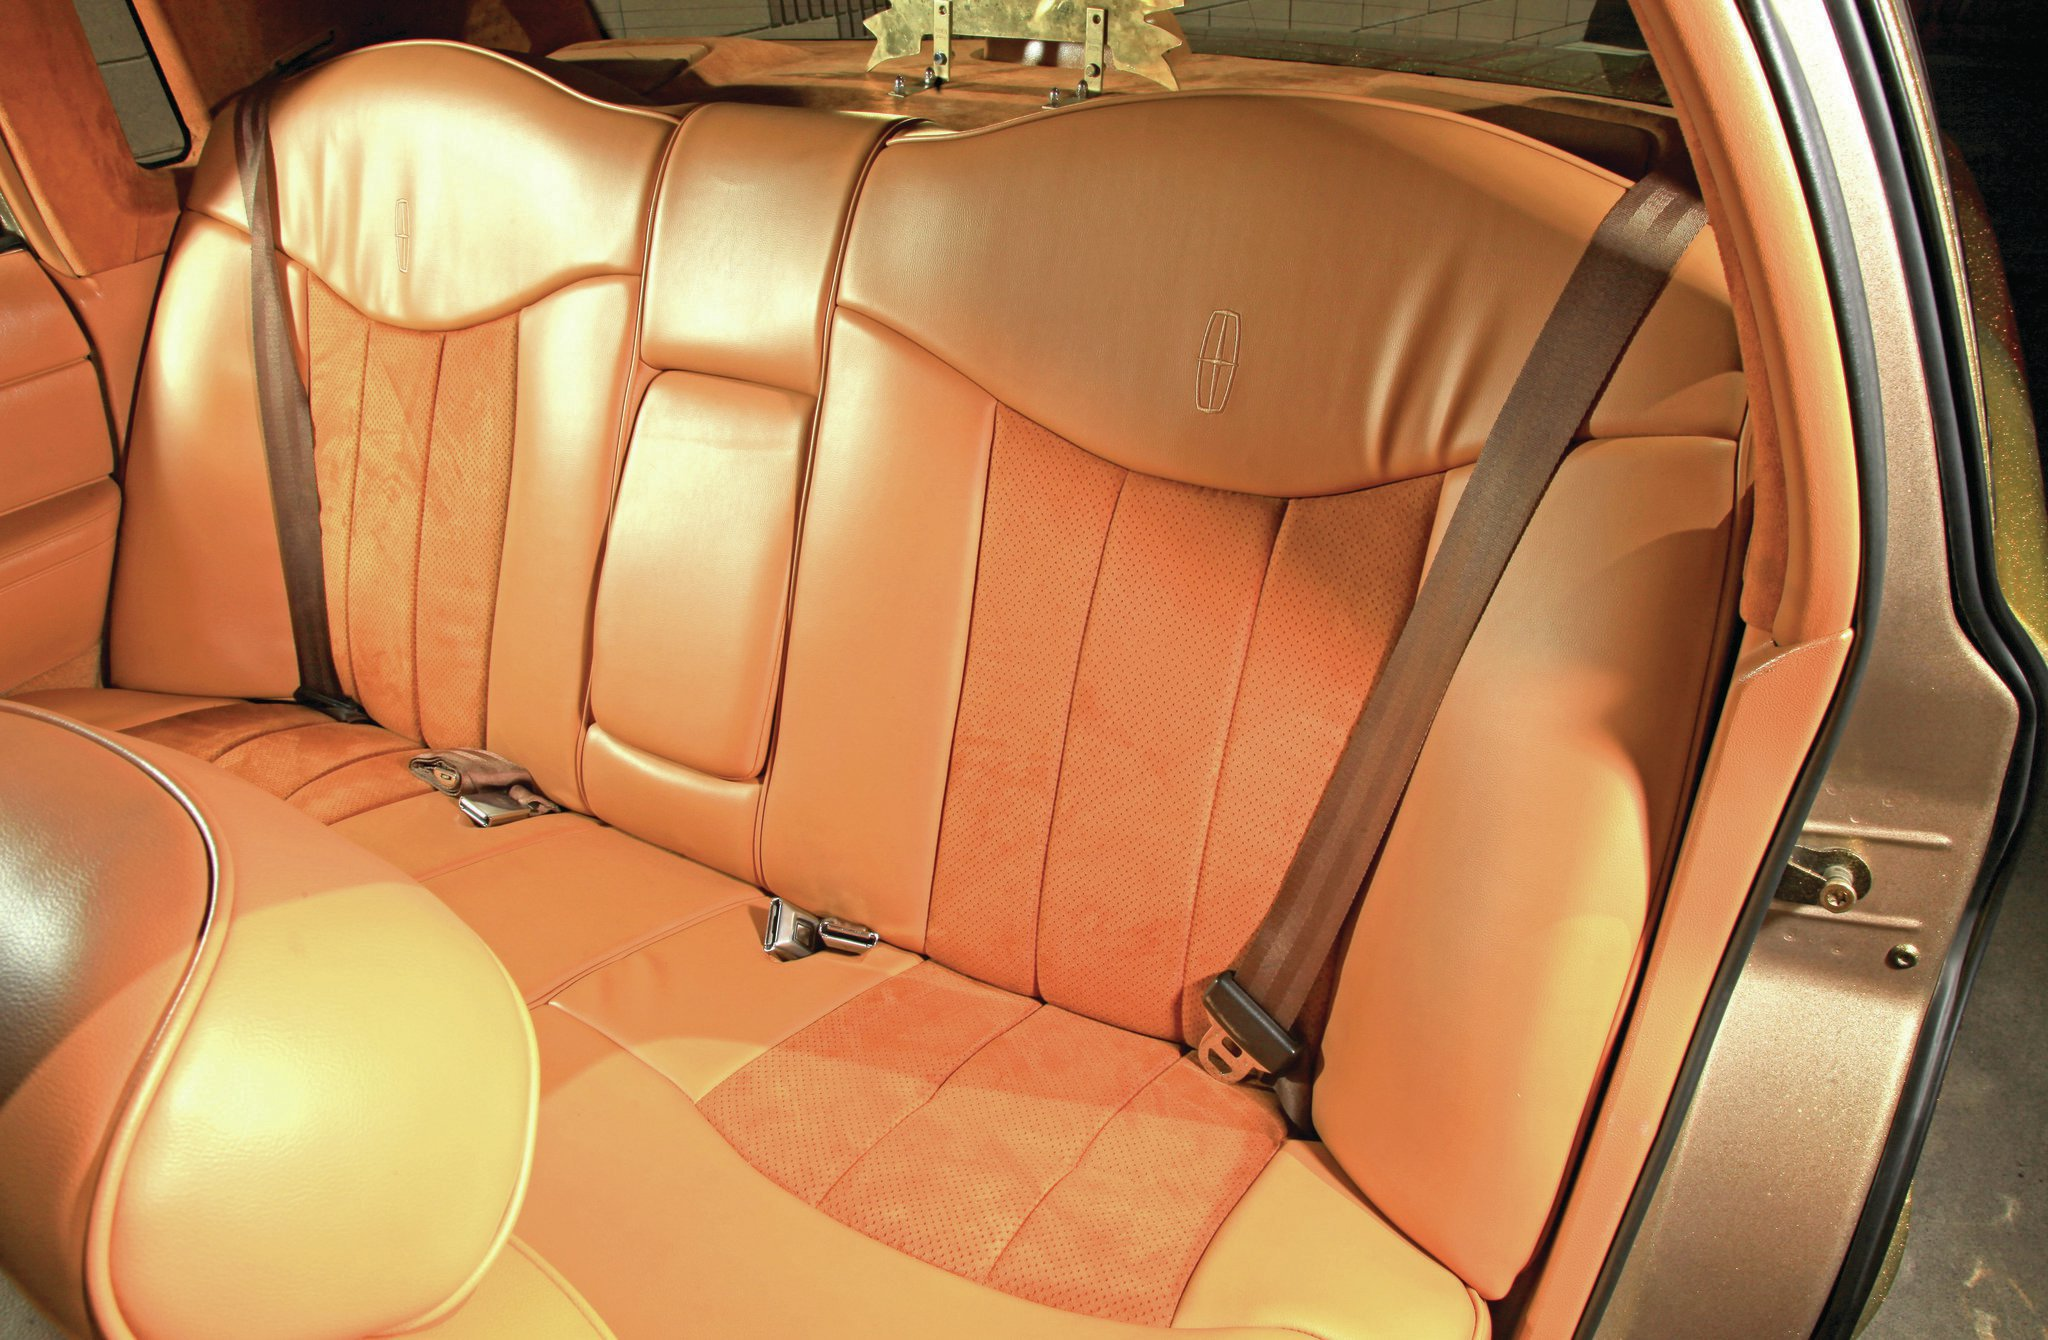 1997 Lincoln Town Car Leather And Suede Backseat 03 Lowrider